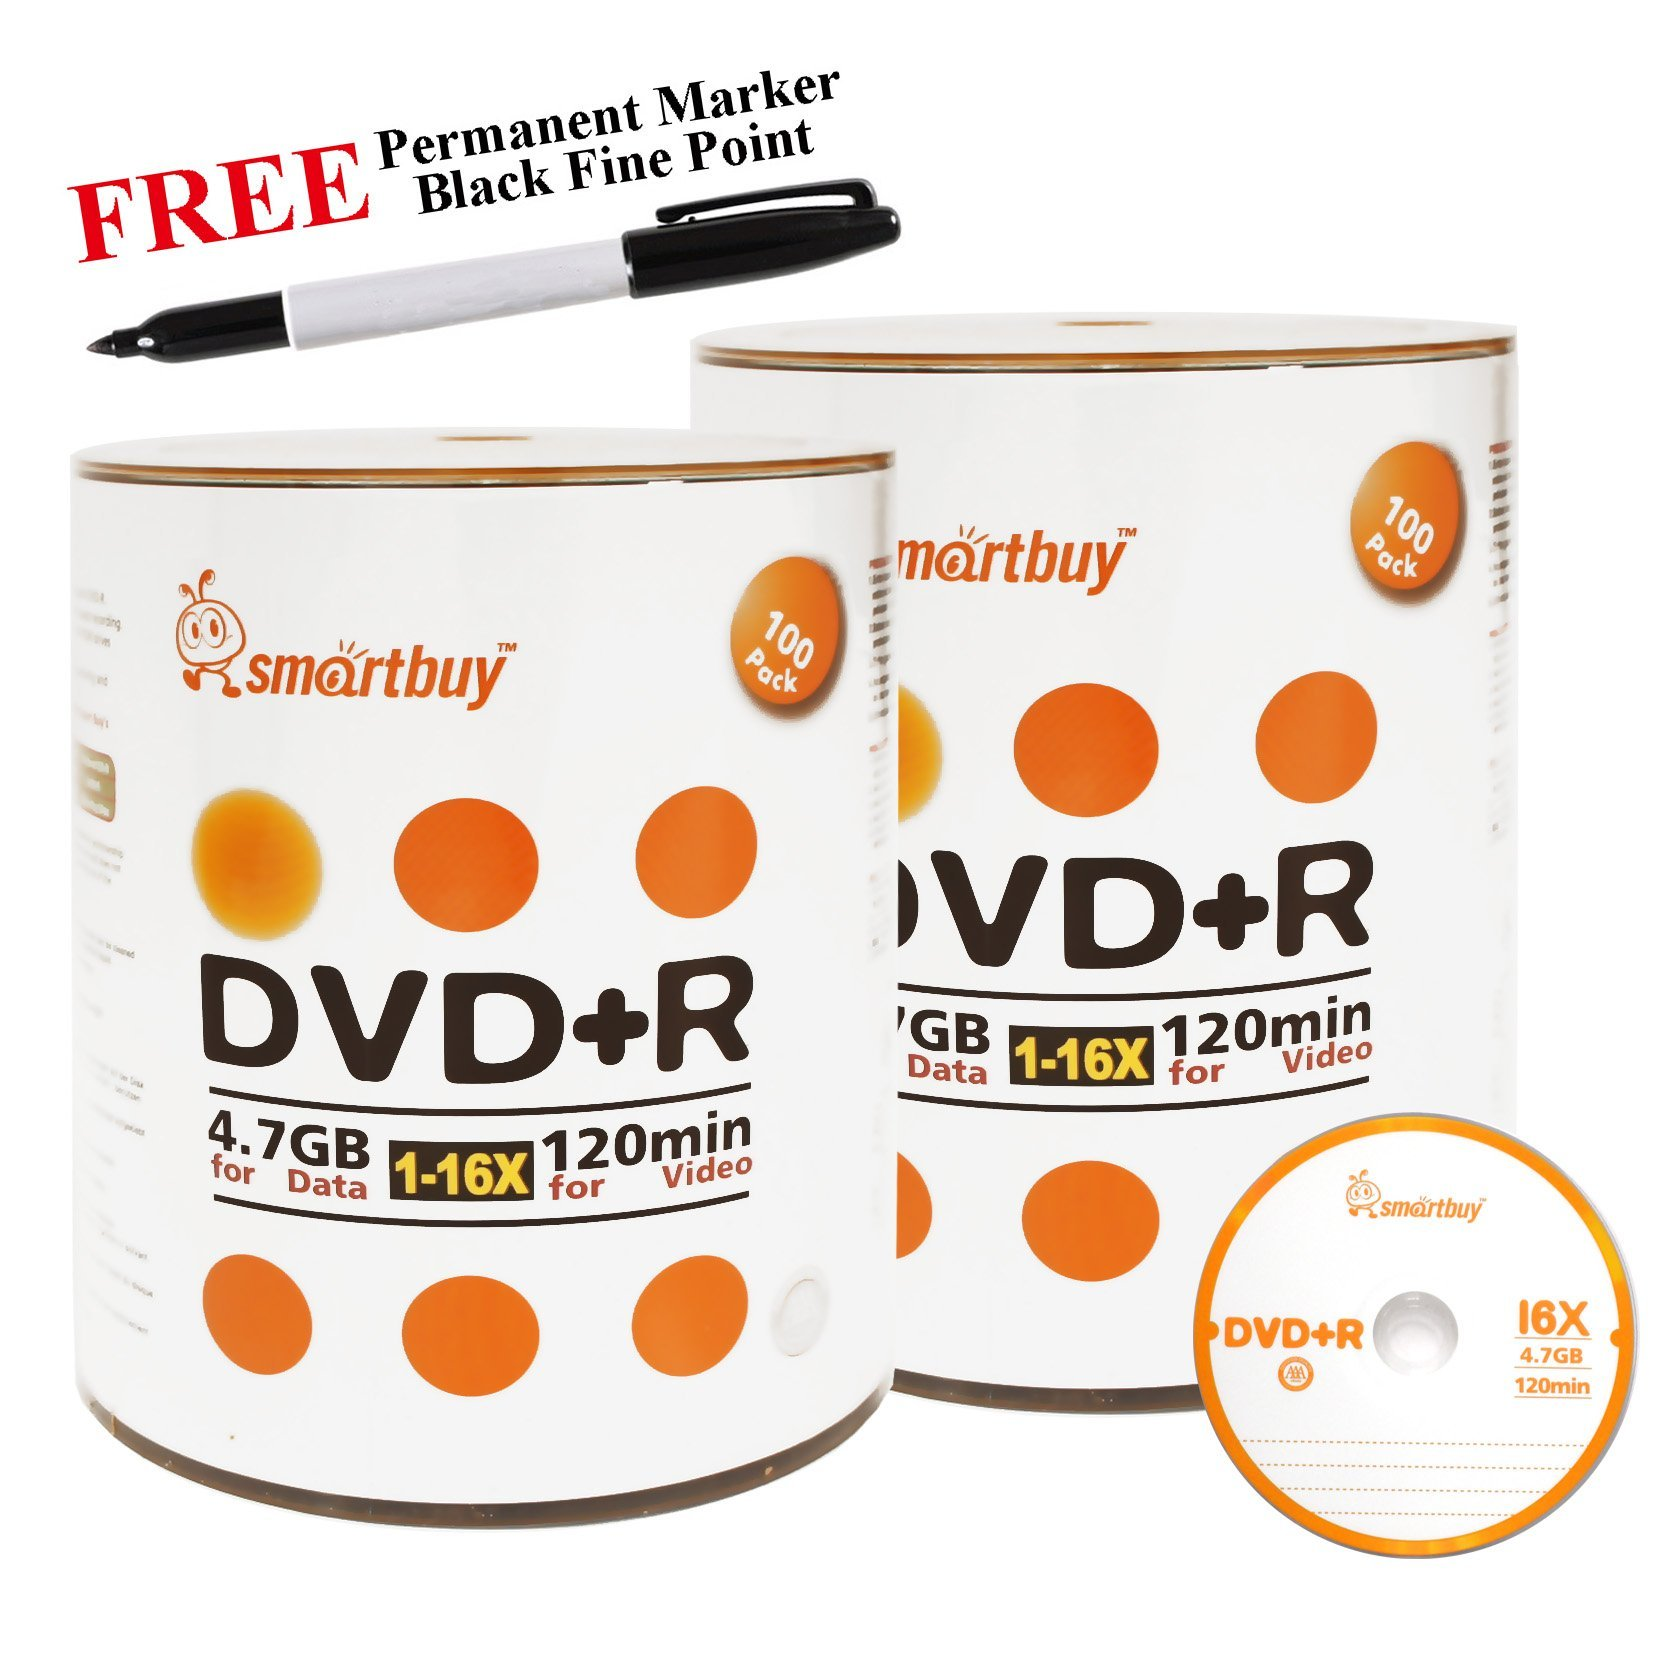 Smartbuy 200-disc 4.7GB/120min 16x DVD+R Logo Top Blank Media Record Disc + Black Permanent Marker